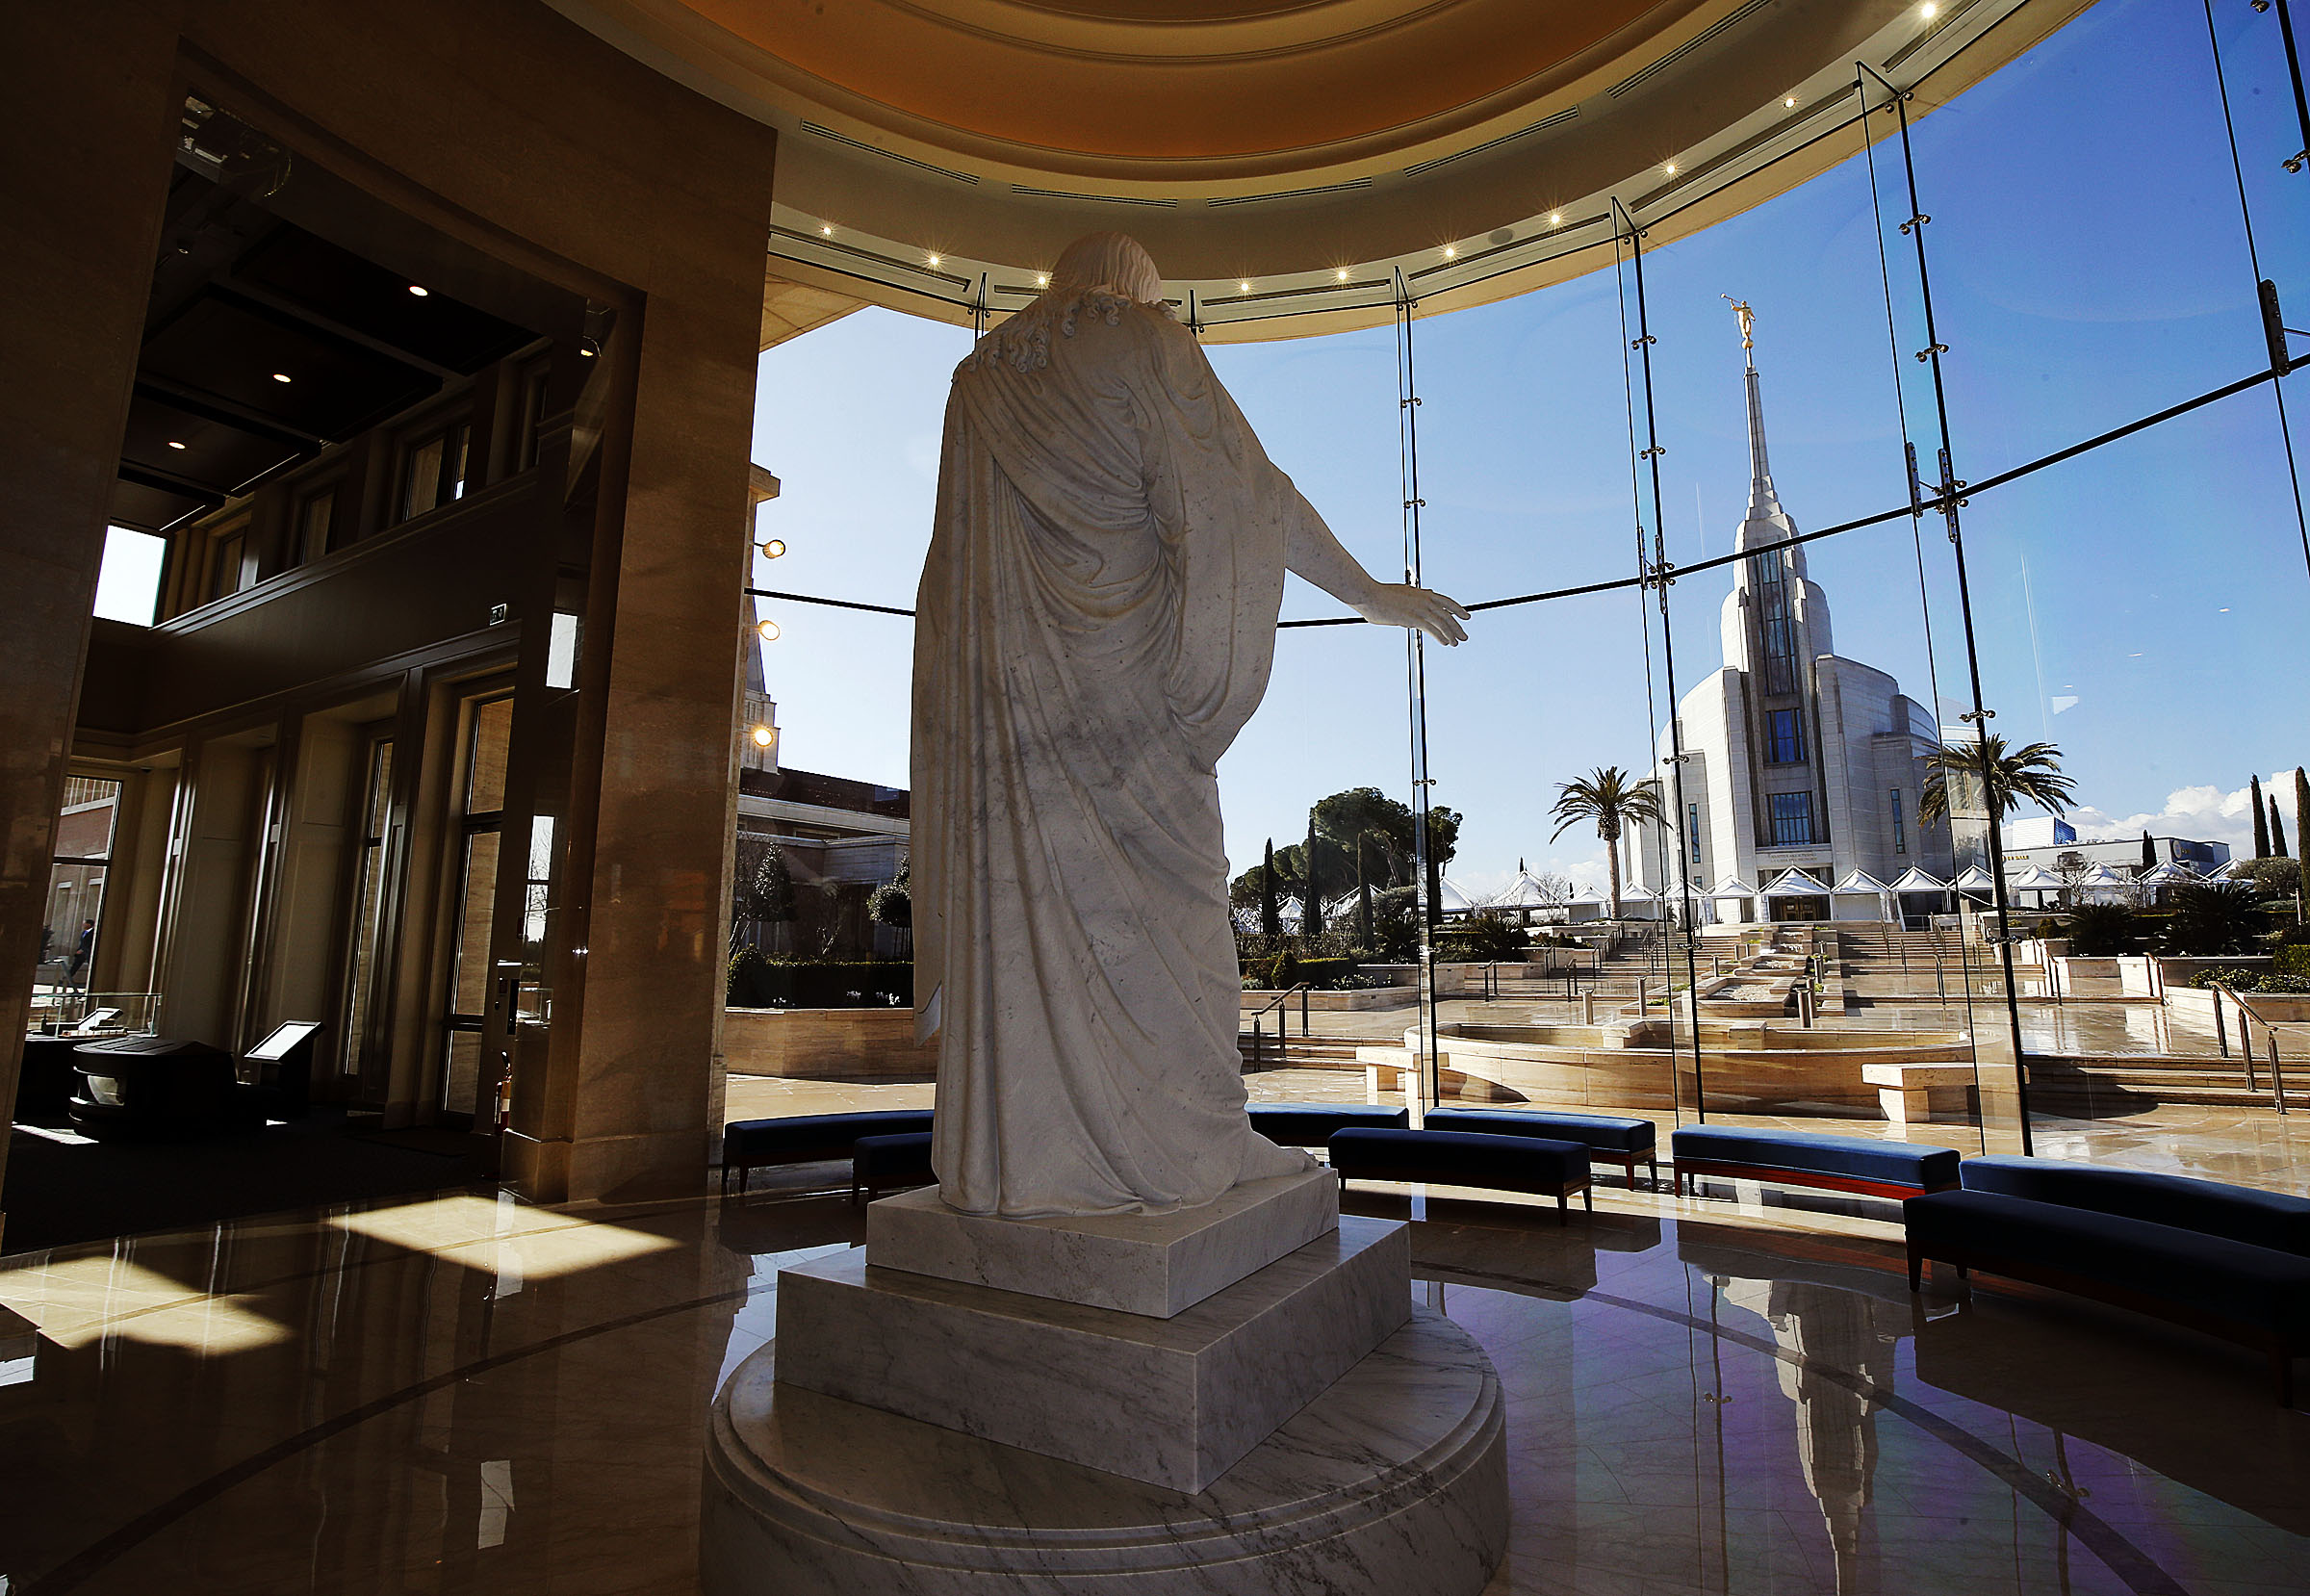 The Rome Italy Temple is seen through the window of the Rome Temple Visitor's Center of The Church of Jesus Christ of Latter-day Saints on Monday, Jan. 14, 2019. In the foreground is a statue of Christ.